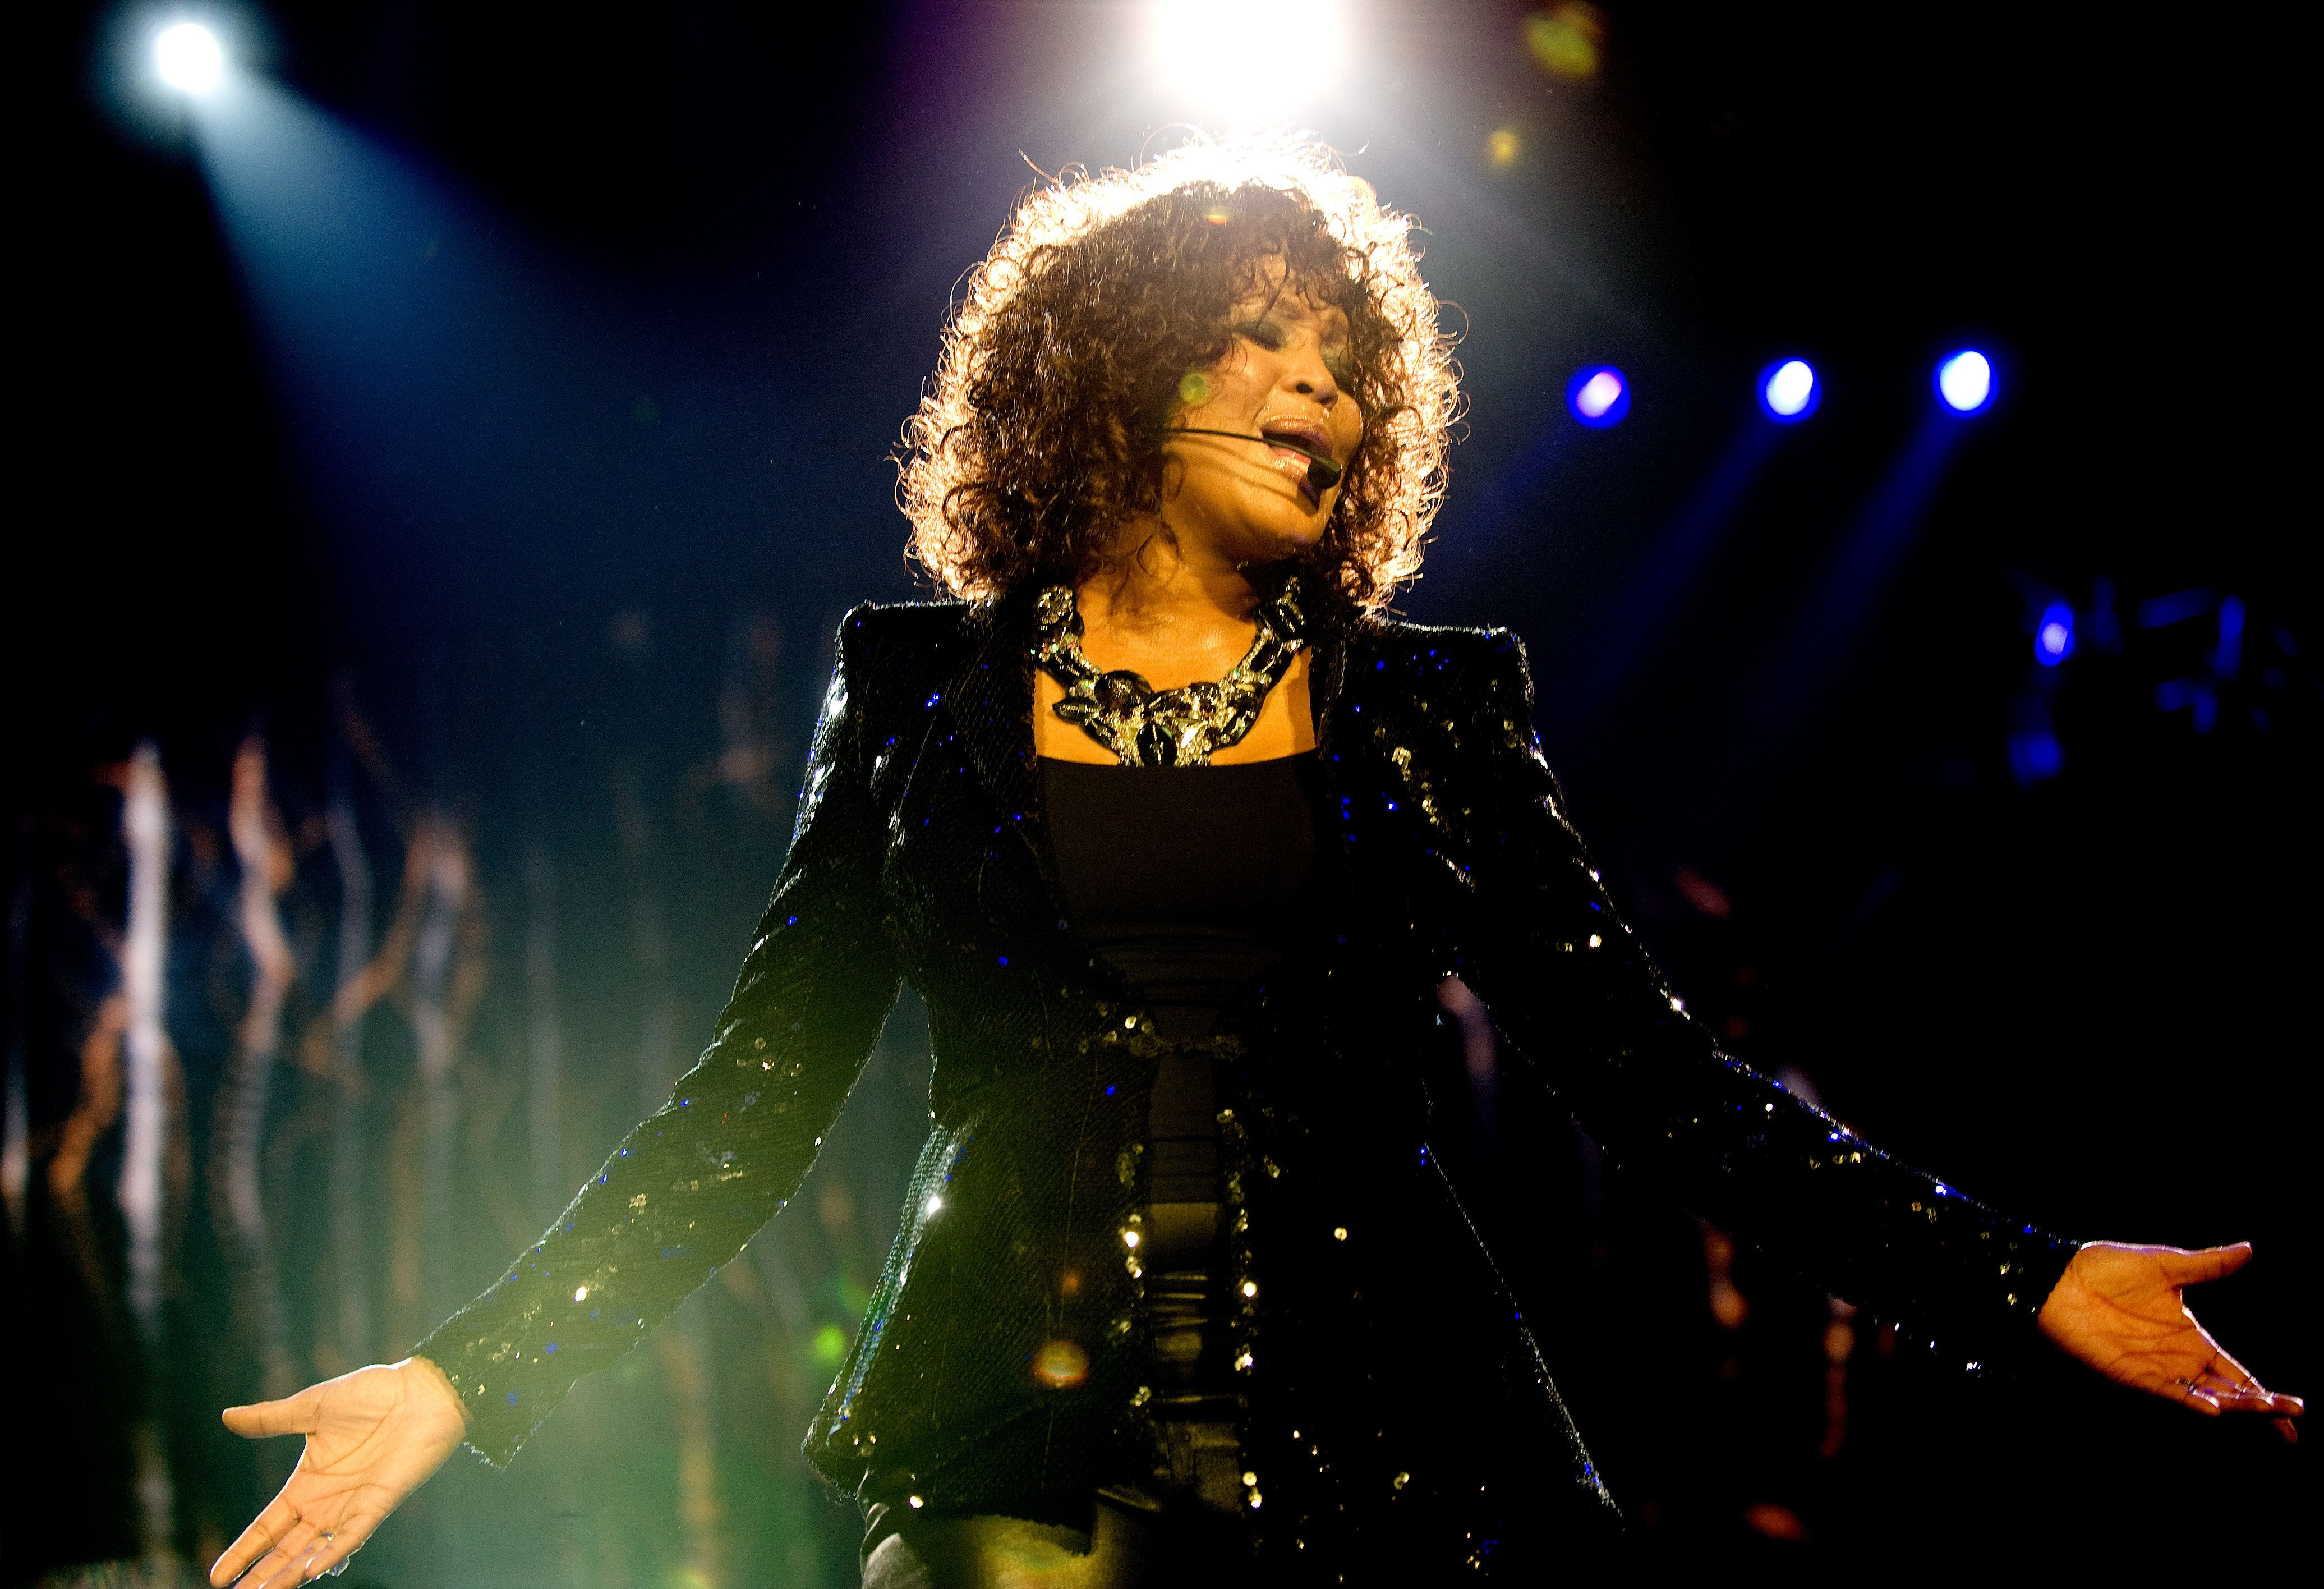 Whitney Houston Doc Includes Accusation That Cousin Dee Dee Warwick Molested Her